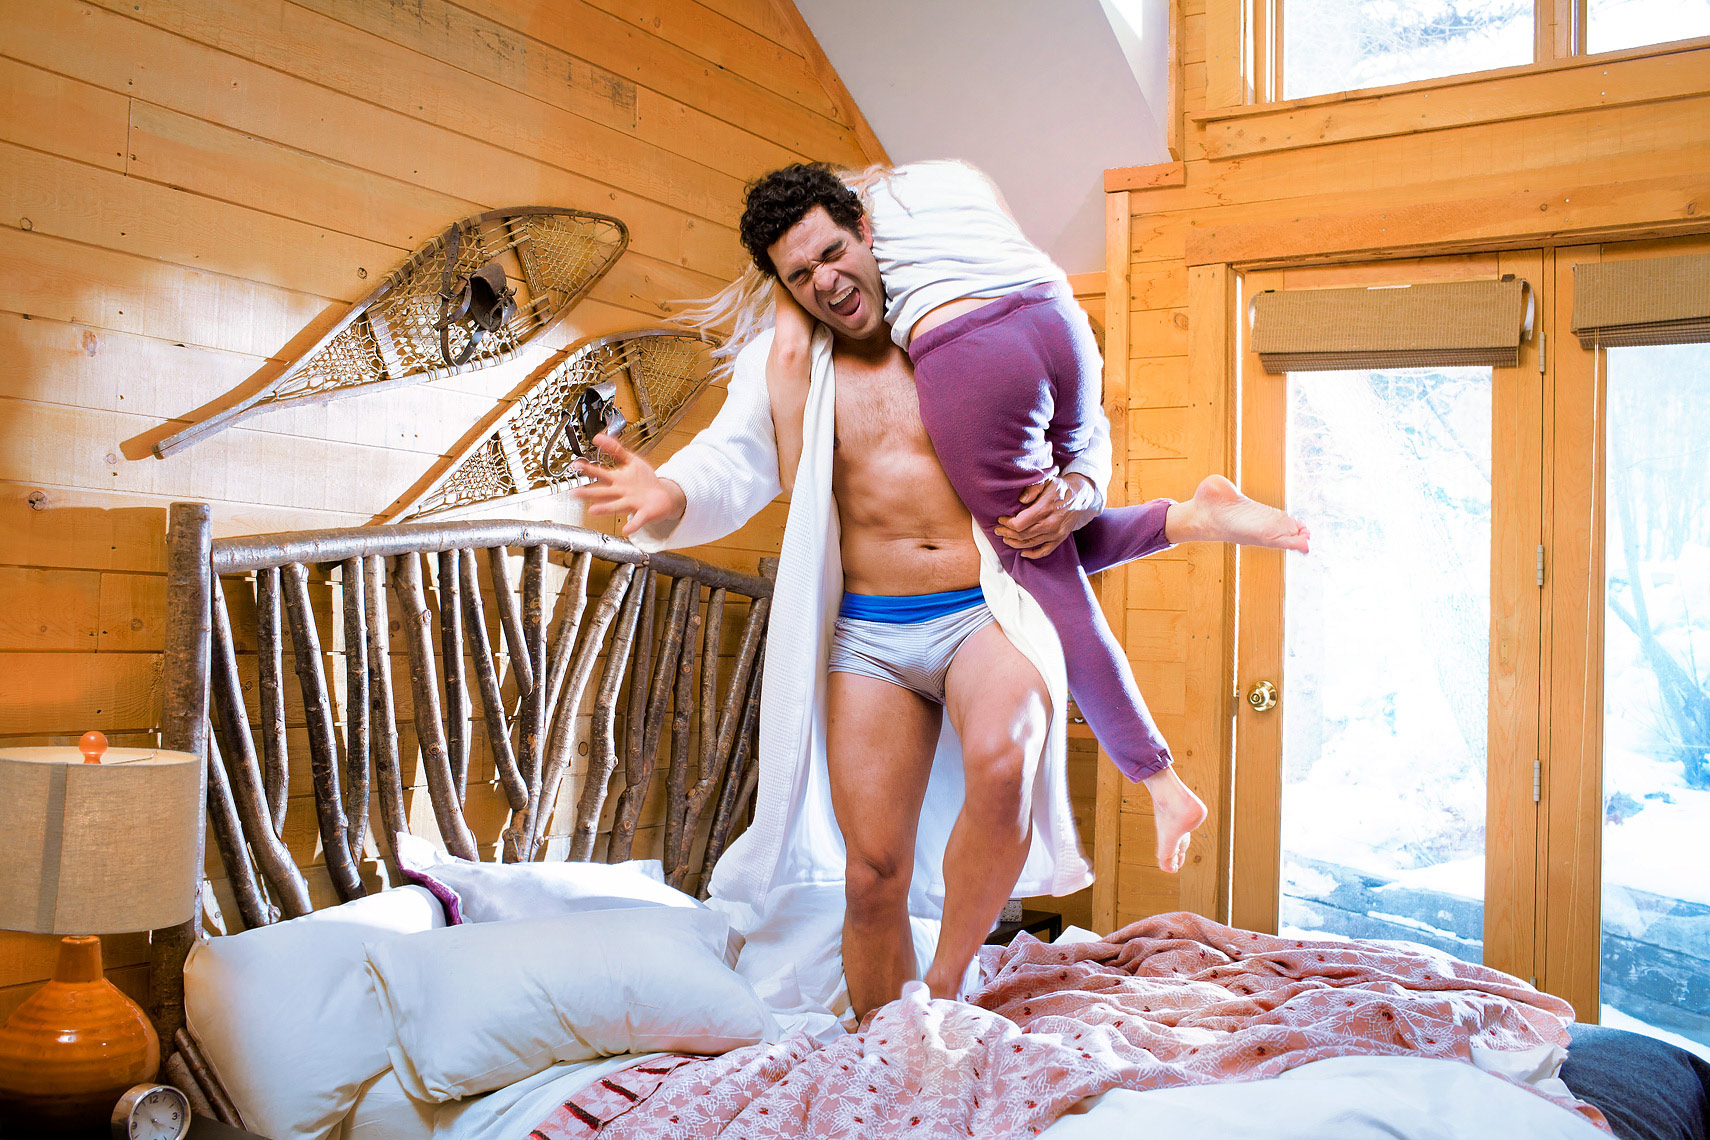 lifestyle-photograph-of-couple-jumping-on-bed-ann-arbor-commercial-photographer-scott-stewart